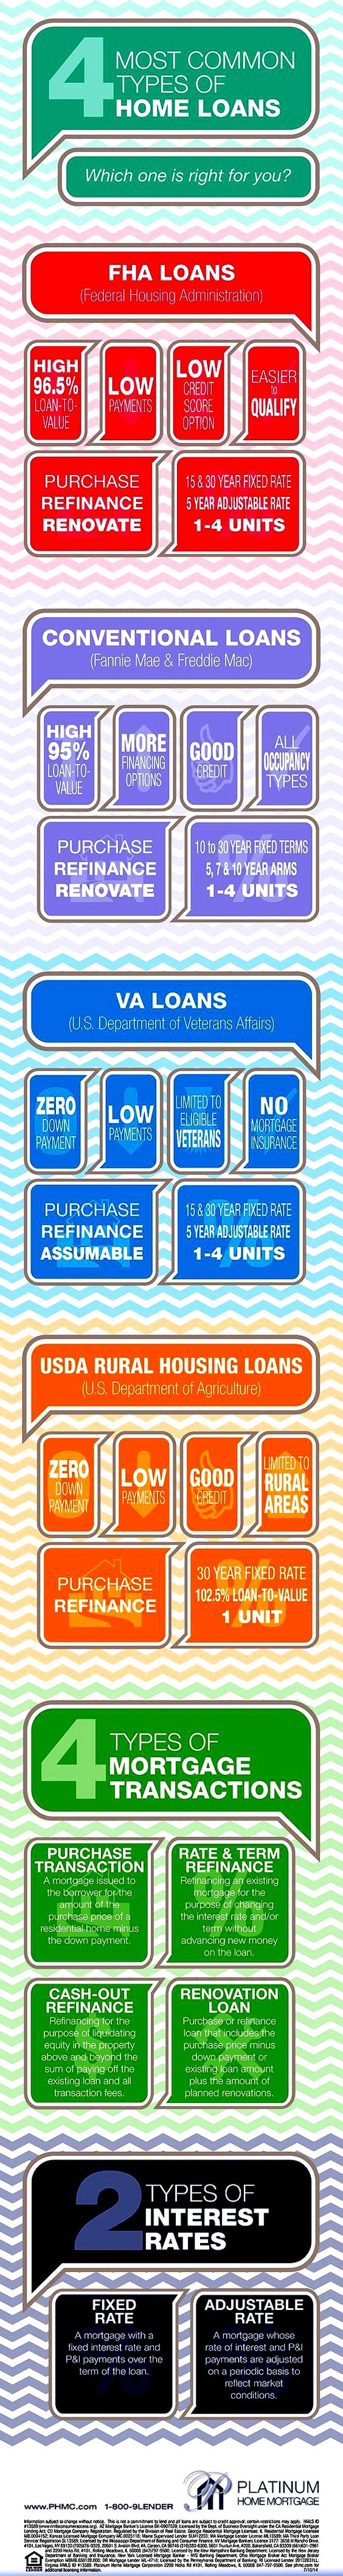 There Is Many Different Types Of Home Loans These Are The Most Common Home Loans Real Estate Tips Real Estate Infographic